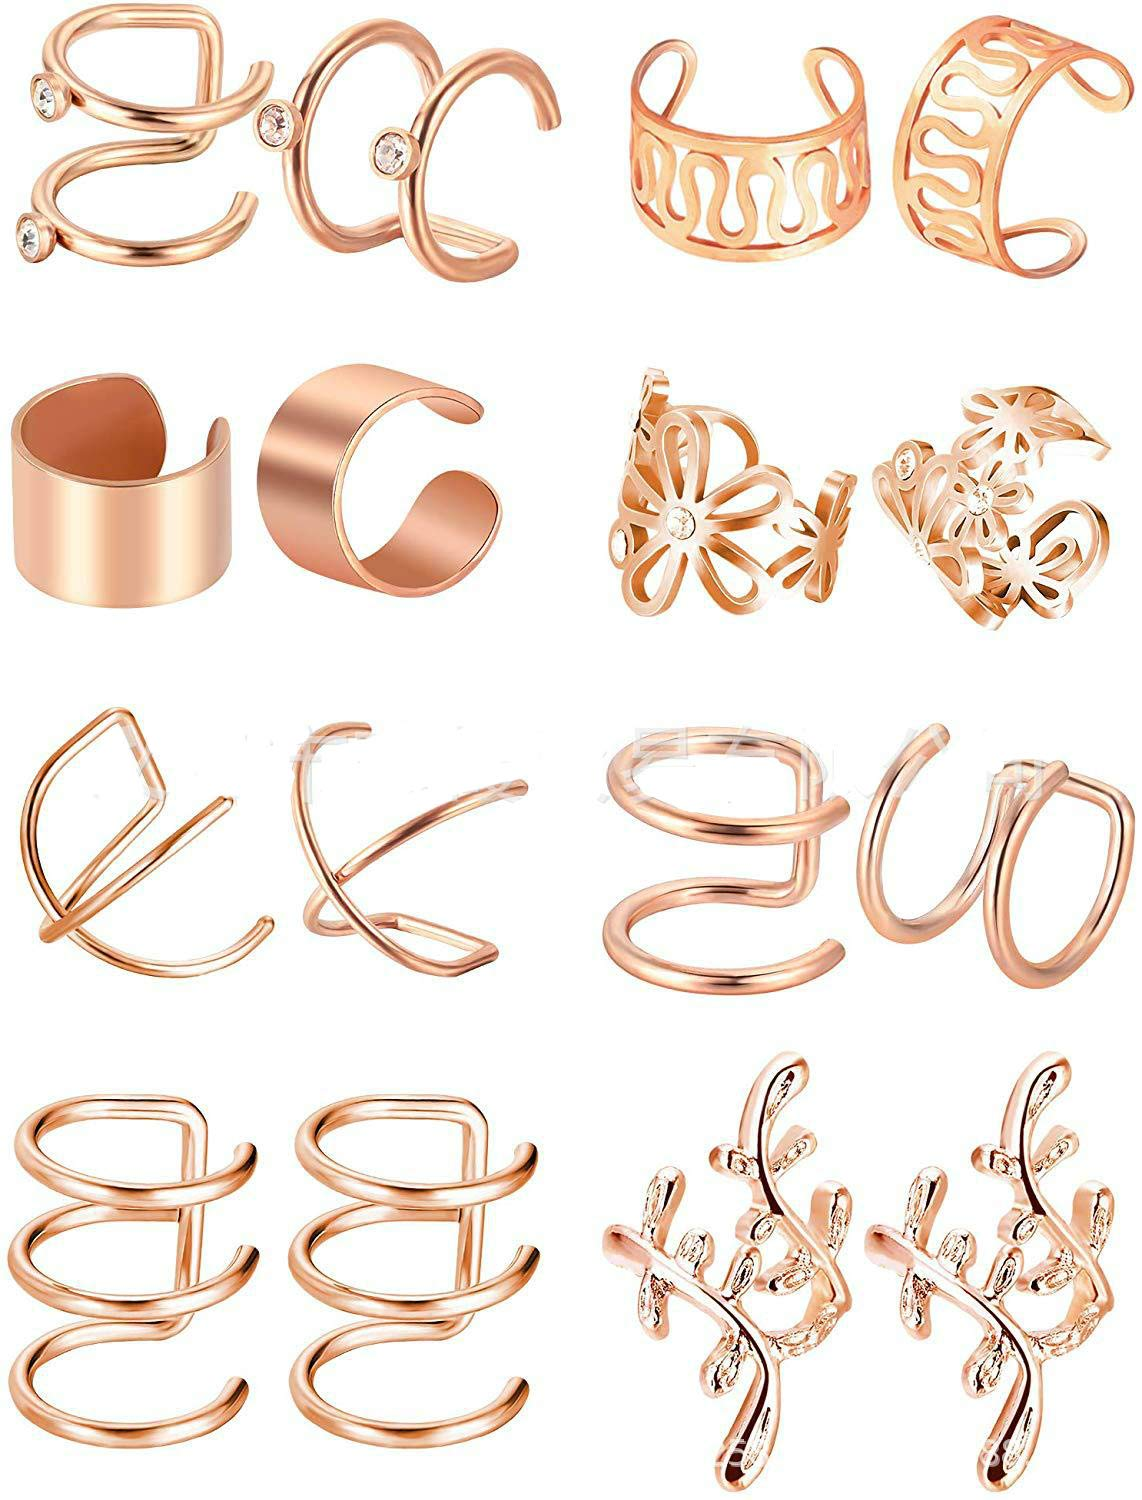 Sither 8 Piece Women Earrings Cuff Clip for Girls Ear Clips Ear Wraps Cuff Helix Cartilage Clip On for Pierced Ears Christmas Jewelry Gift for Her (rose gold)